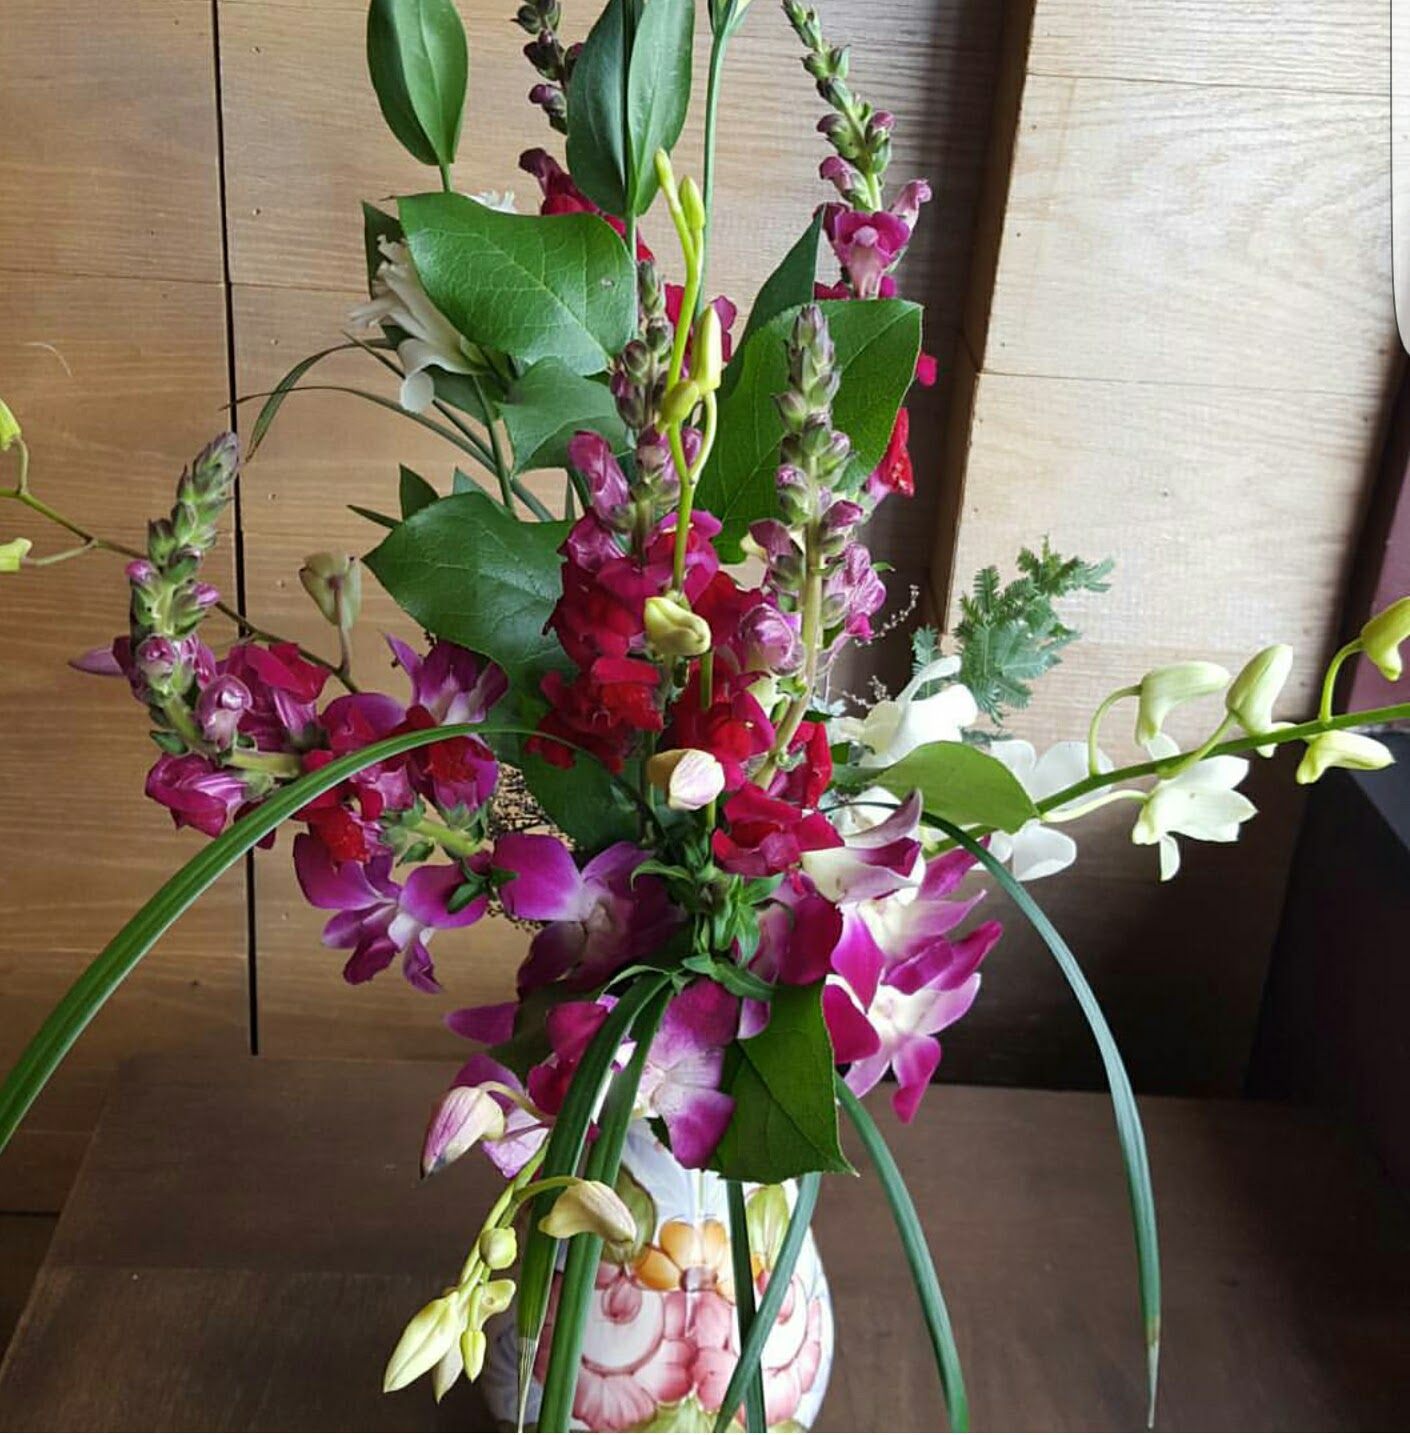 Christophers club richmond va florist 23221 christopher flowers christophers club is a three tier services that allows clients to recieve flowers on a weekly basis this sevice is best for relators placing fresh flowers izmirmasajfo